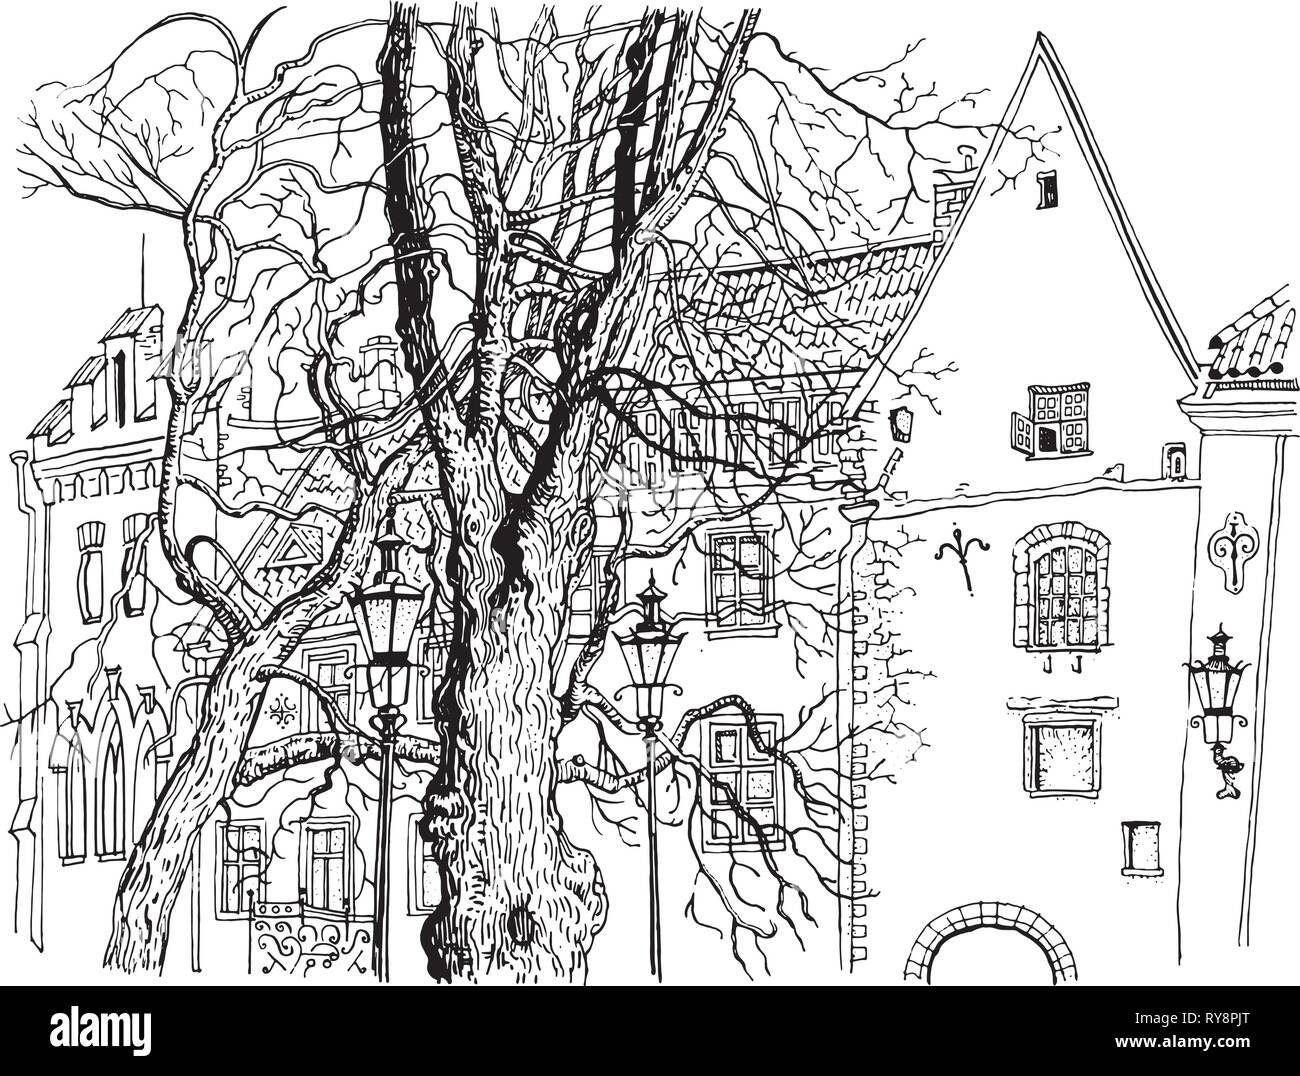 Tallinn Old Town view. Olevimagi street. Hand drawn graphic style ink pen illustration. Historical architecture, medieval houses, trees. Baltic states - Stock Vector